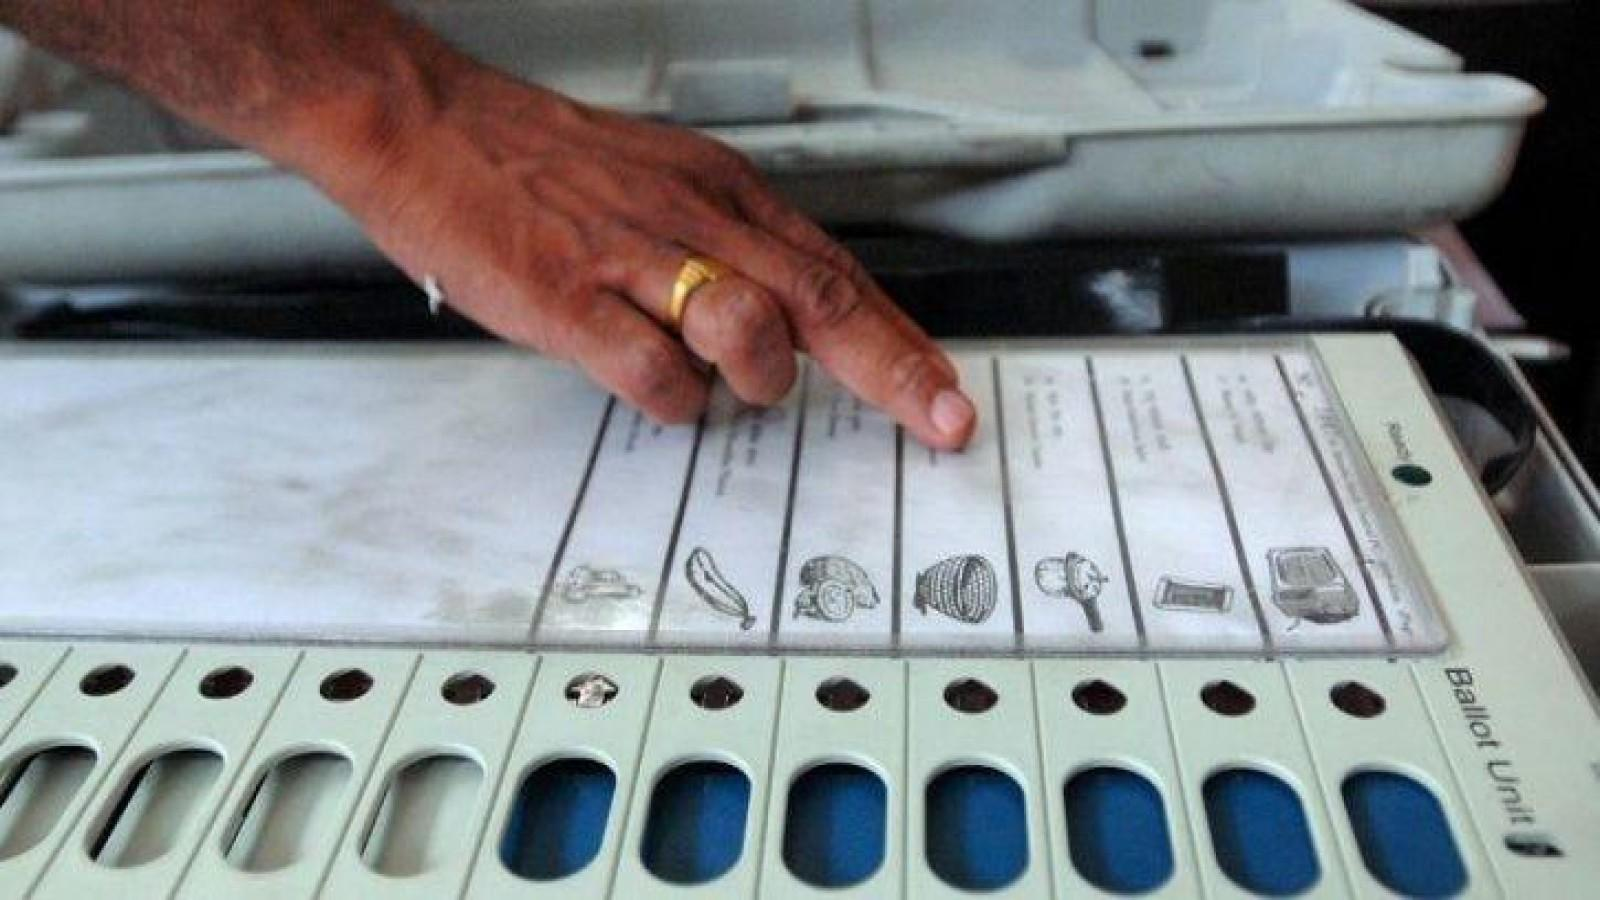 sc-dismisses-100-evm-vvpat-match-plea